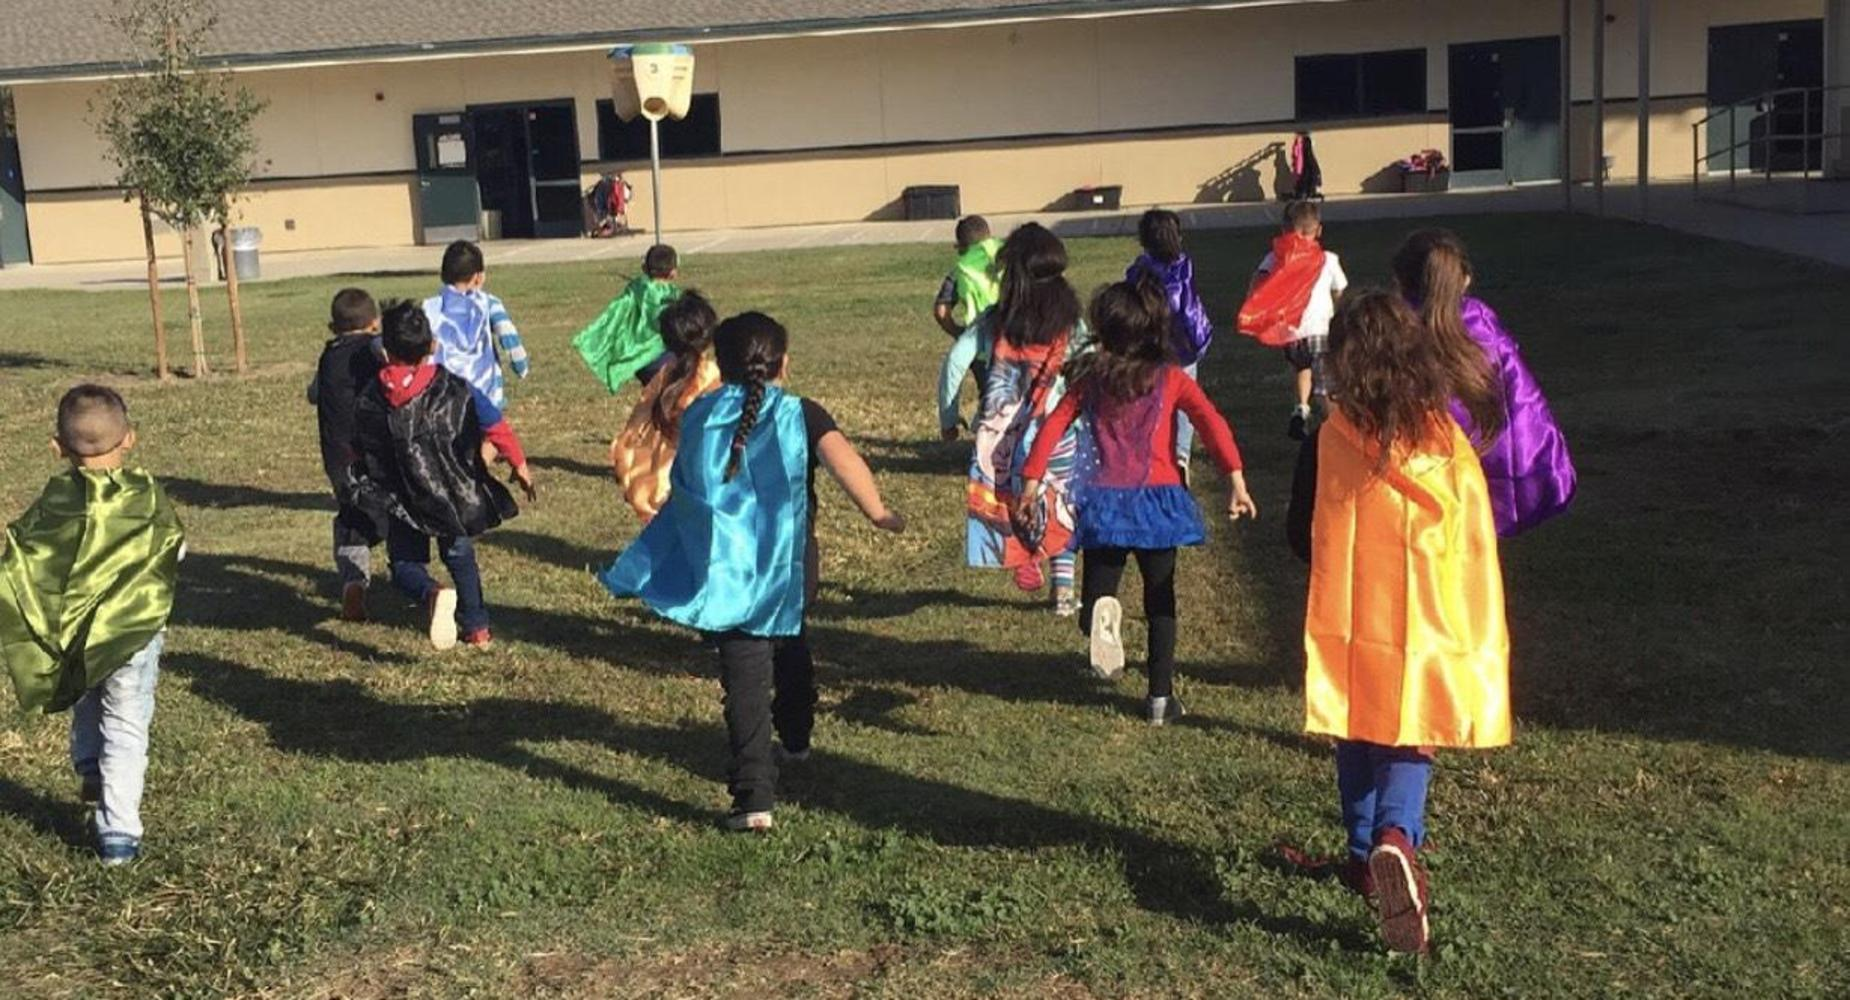 Students dressed as superheroes running across the grass.